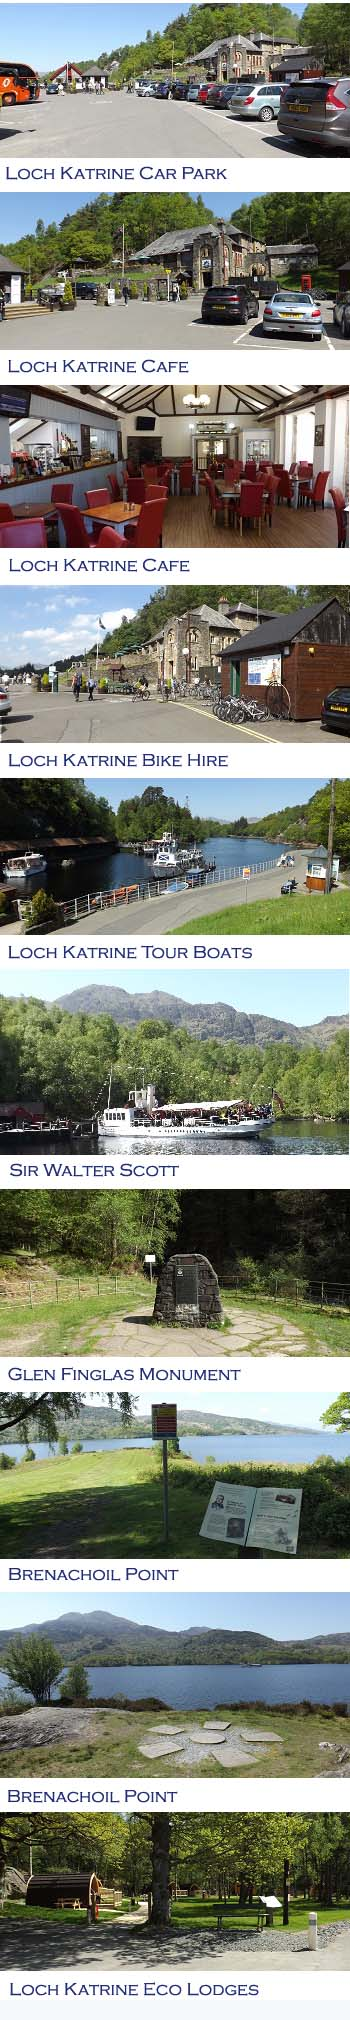 Loch Katrine Photos